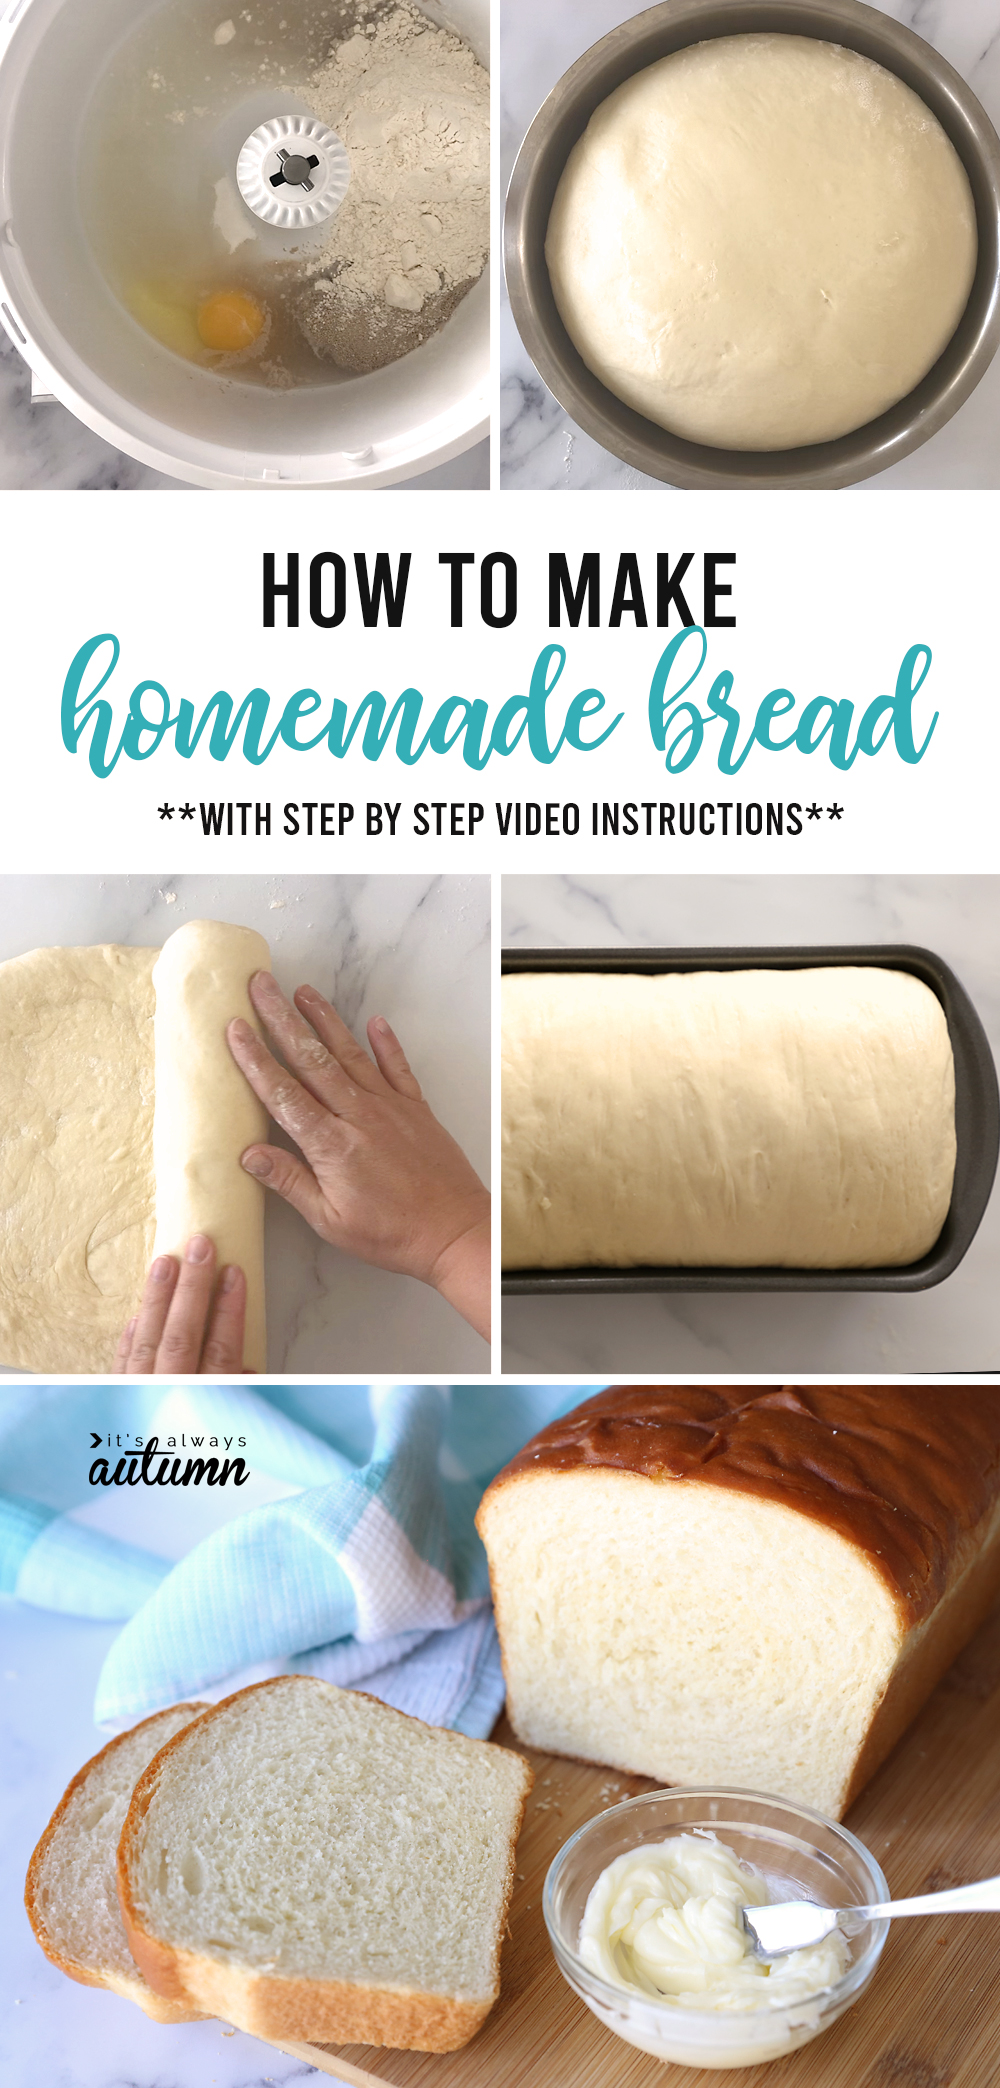 How to make delicious homemade bread: step by step instructions